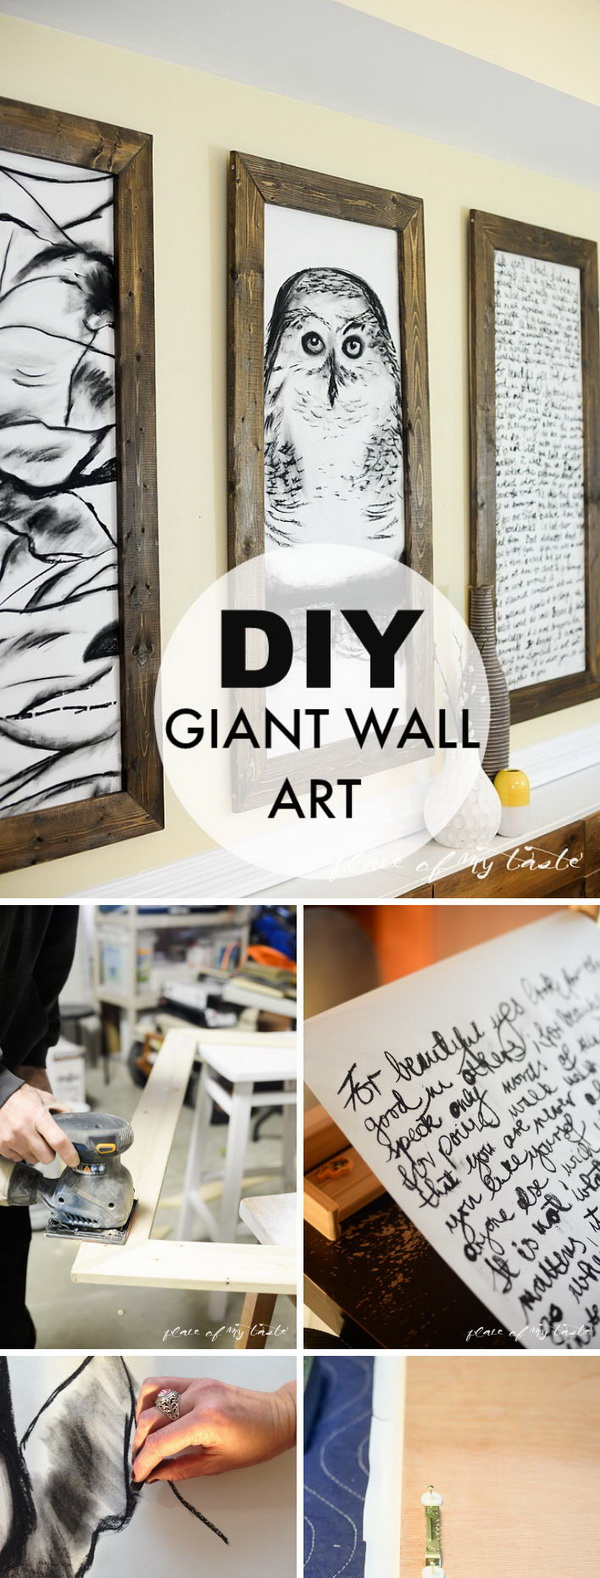 DIY Rustic Giant Wall Art.